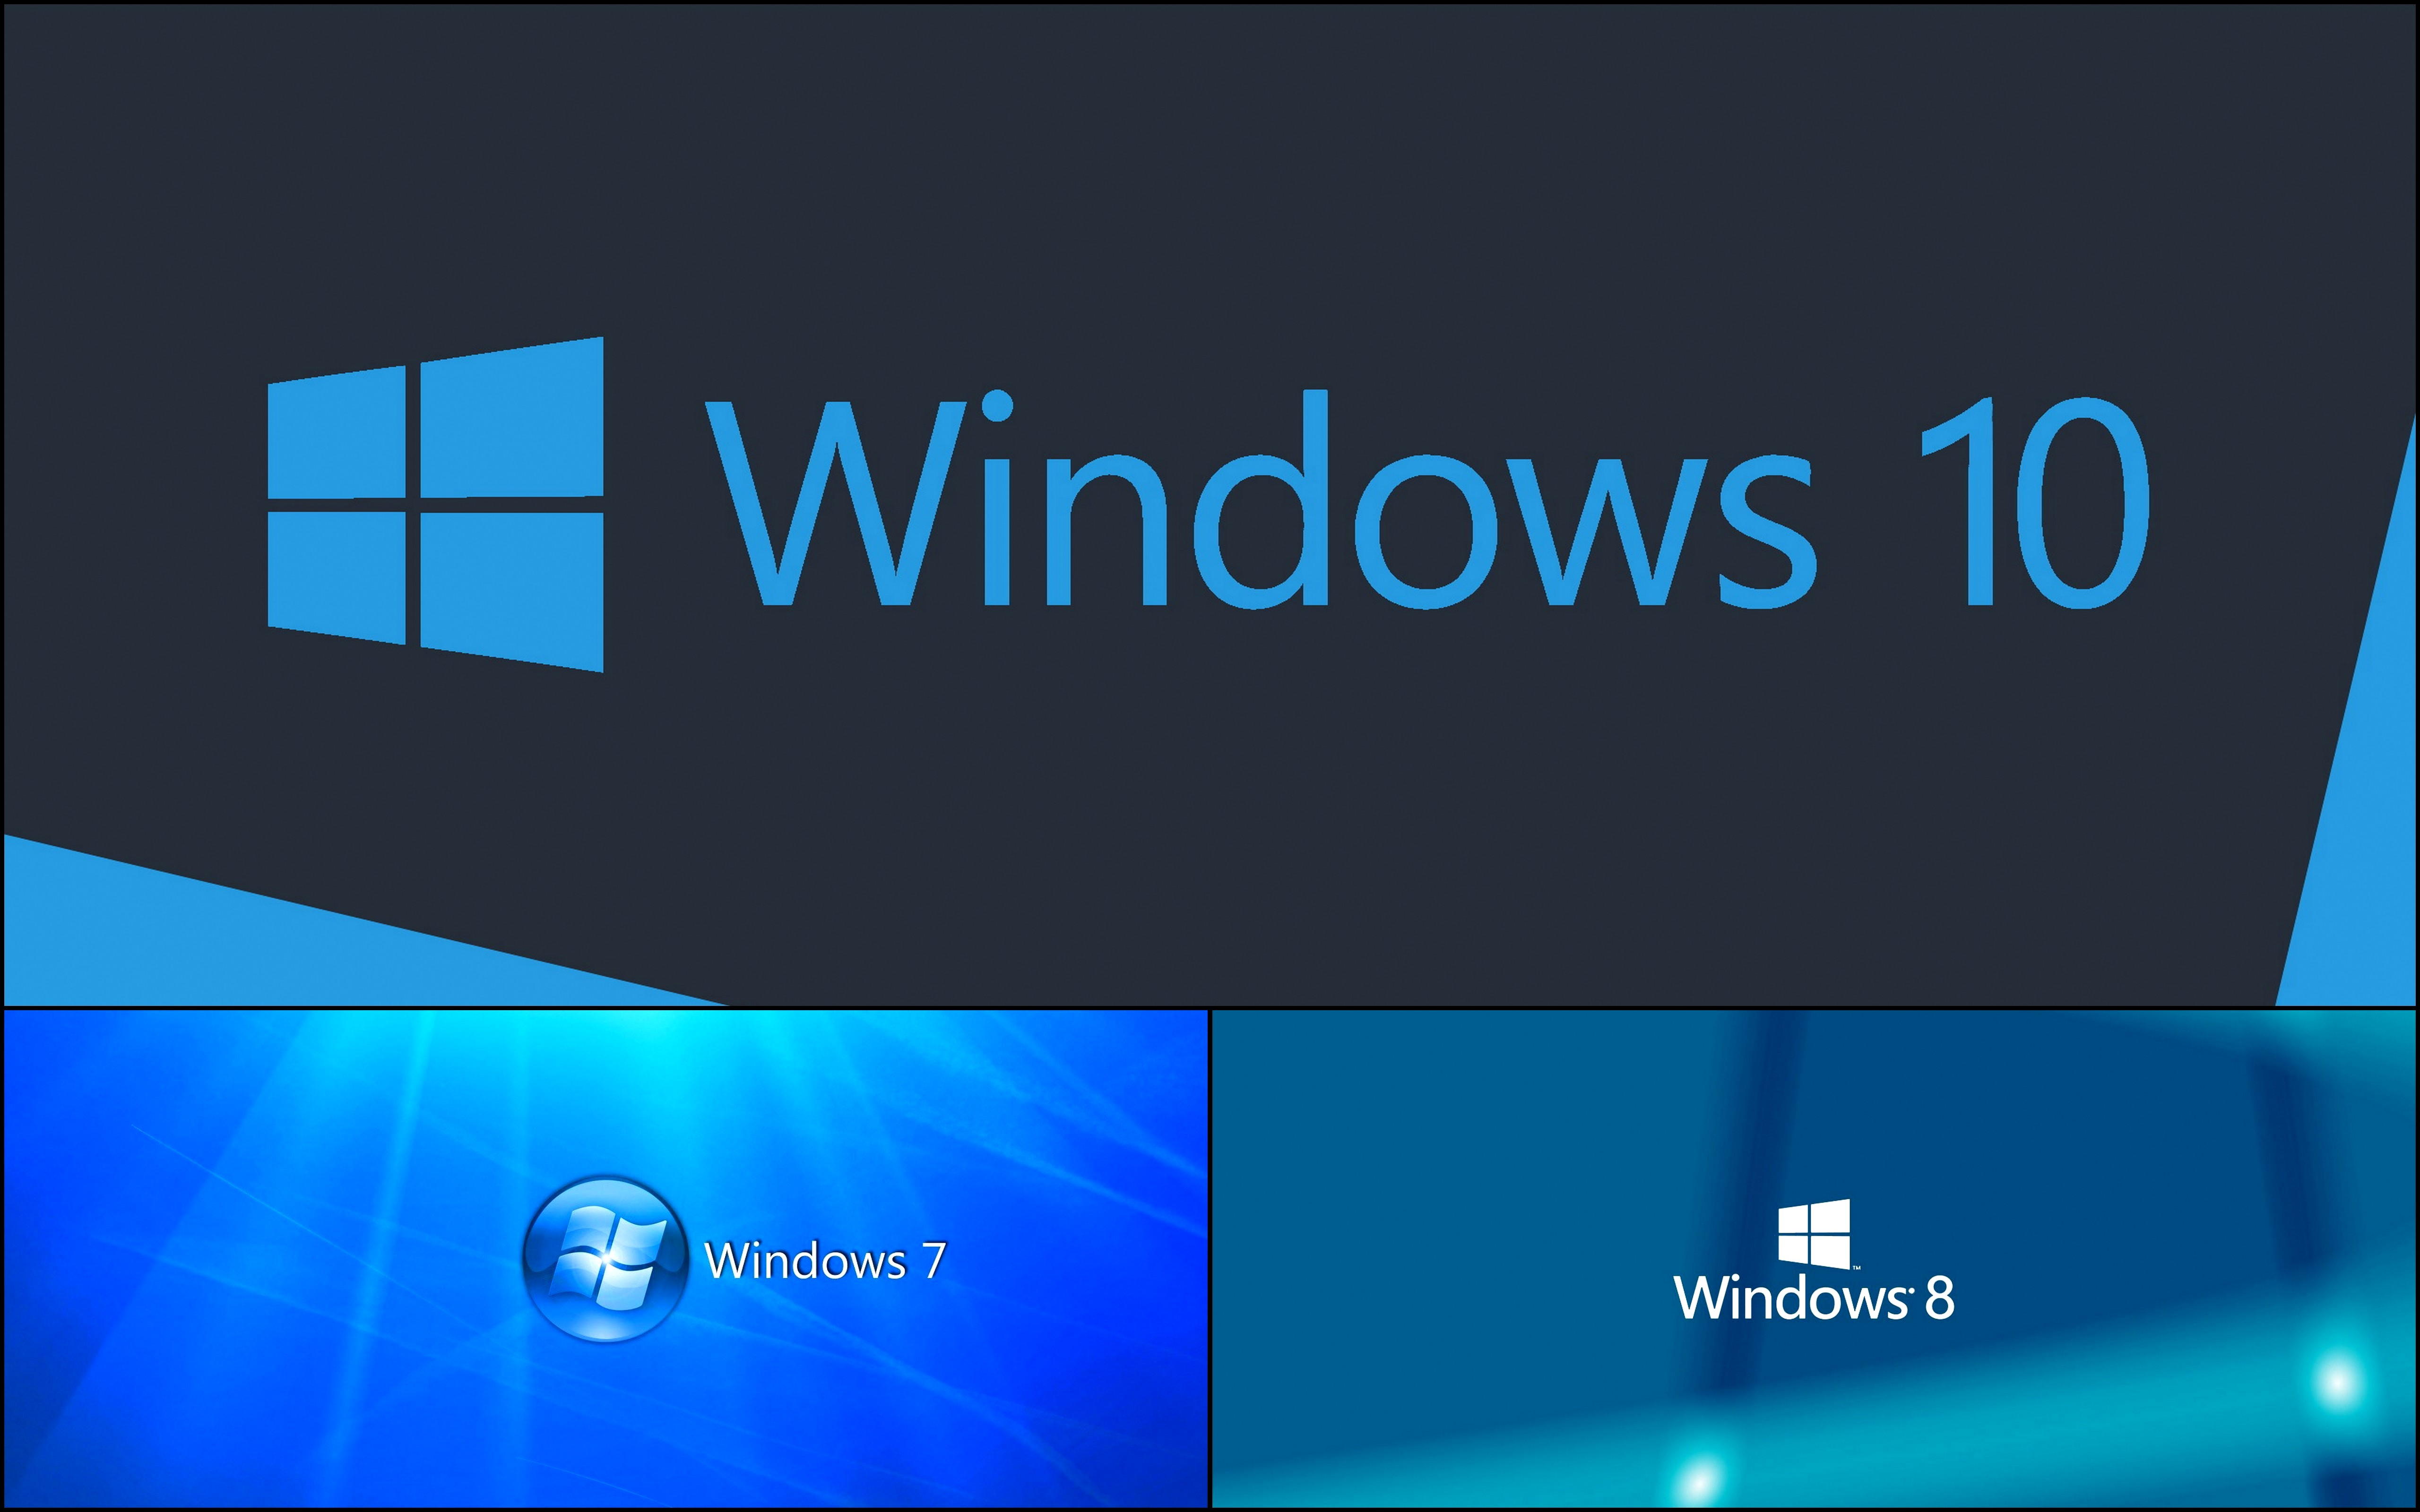 windows 10 is a free upgrade for windows 7 and windows 8 f5